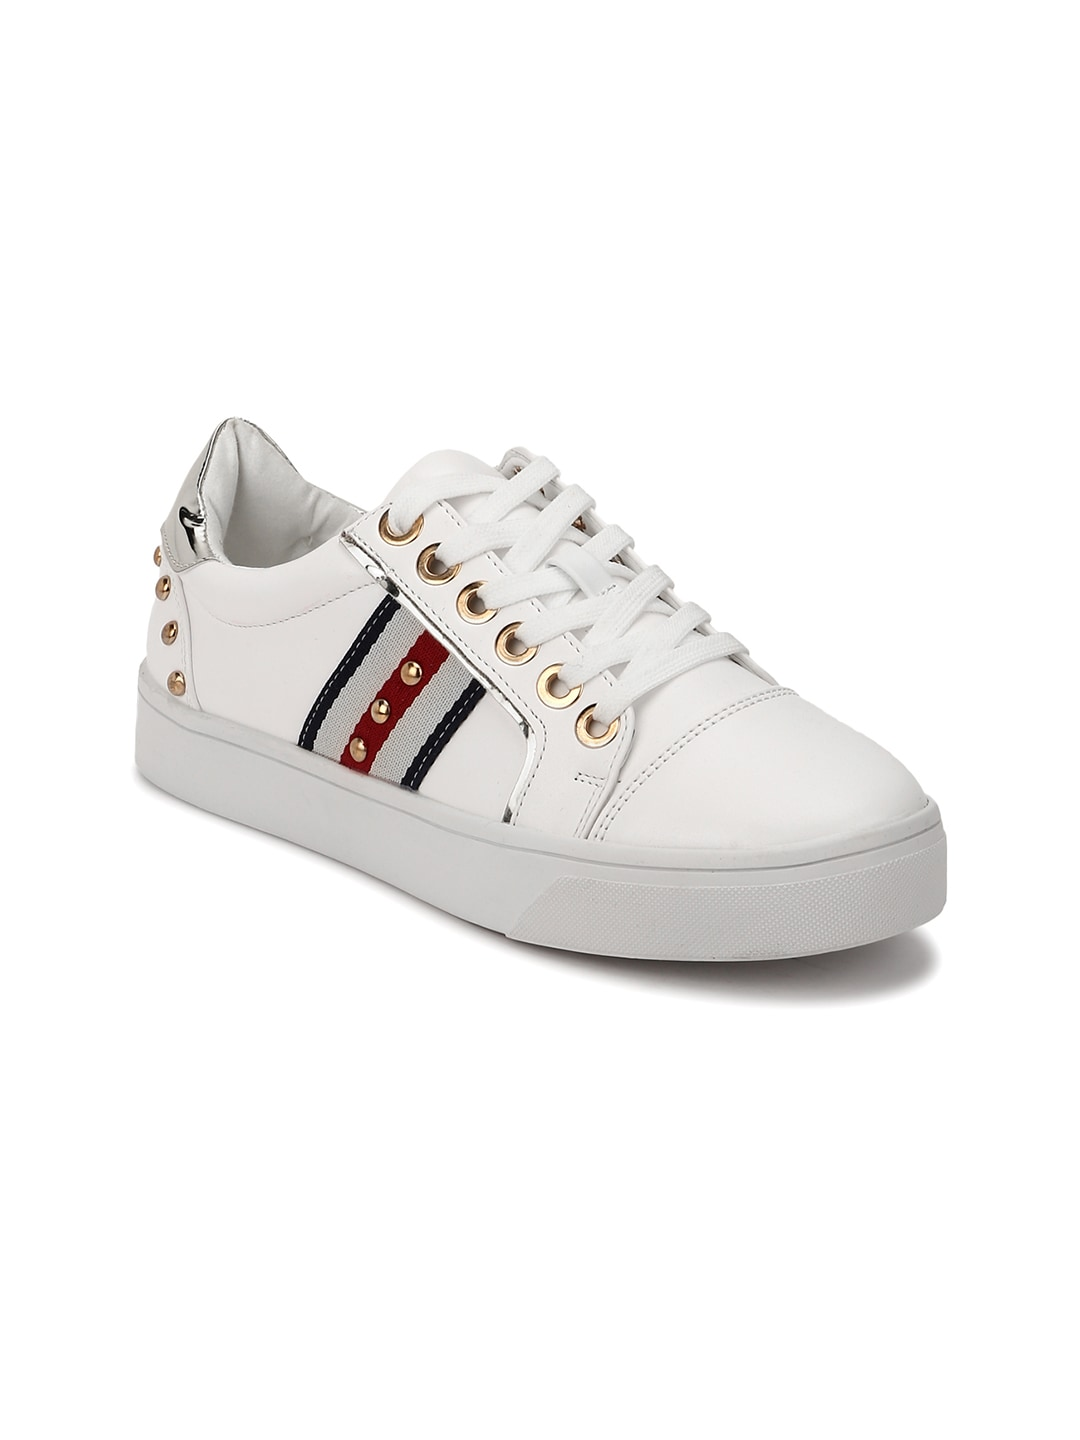 50110709096f Shoes - Buy Shoes for Men